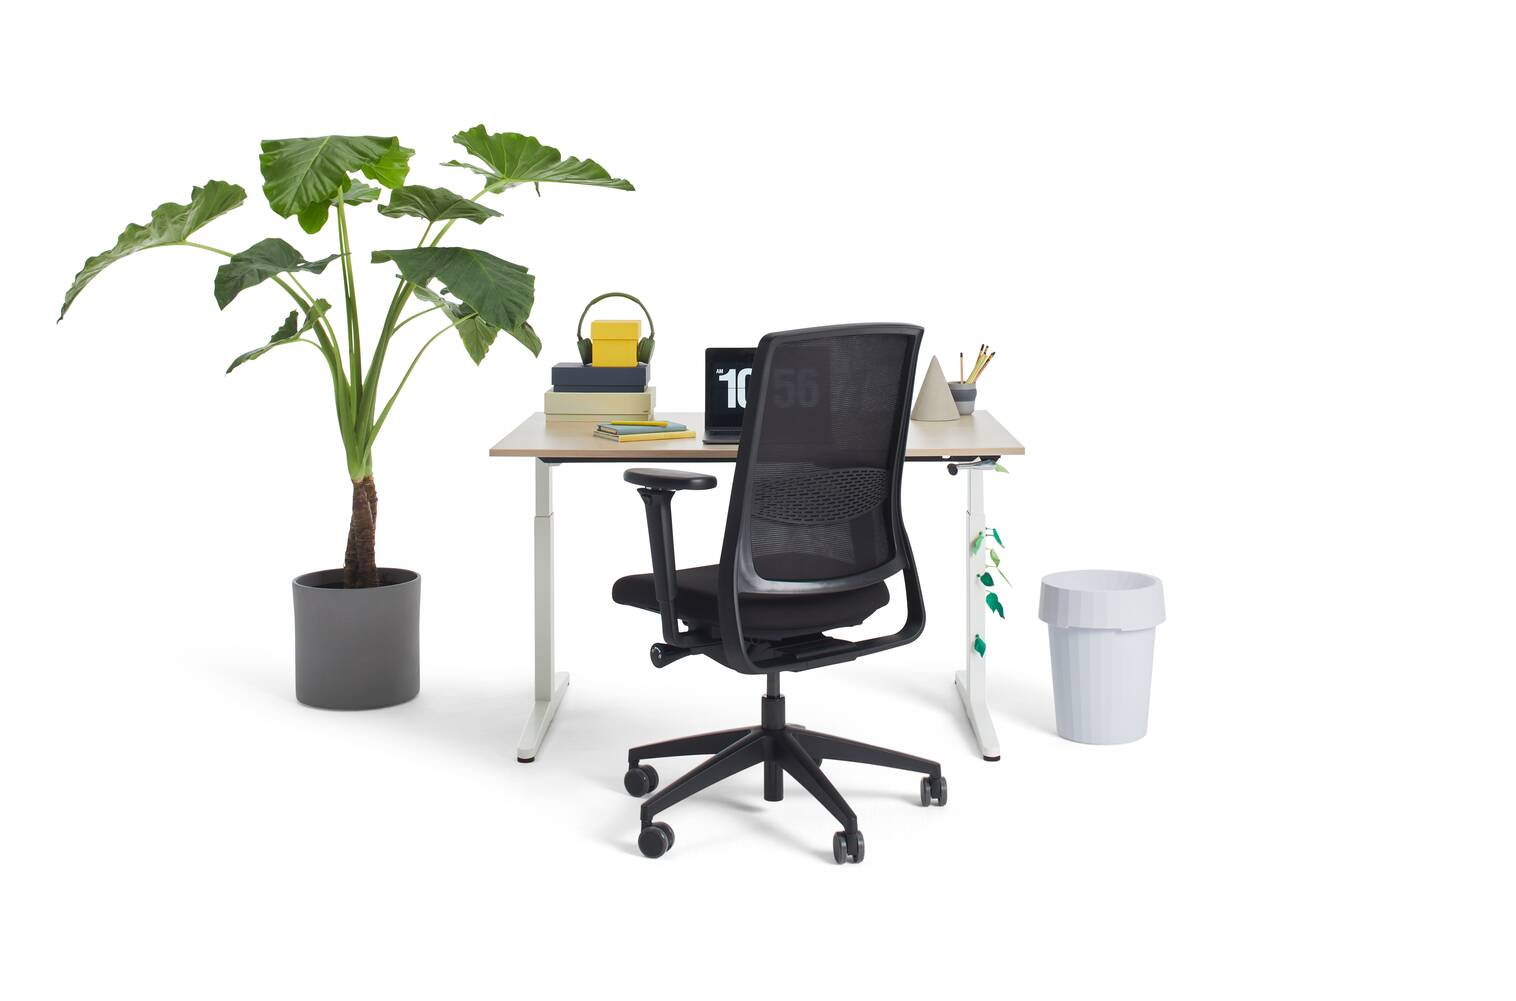 Gispen Home office HVM desk in white with oak tabletop and black Zinn Smart 20 office chair with 4D armrests and styling front view